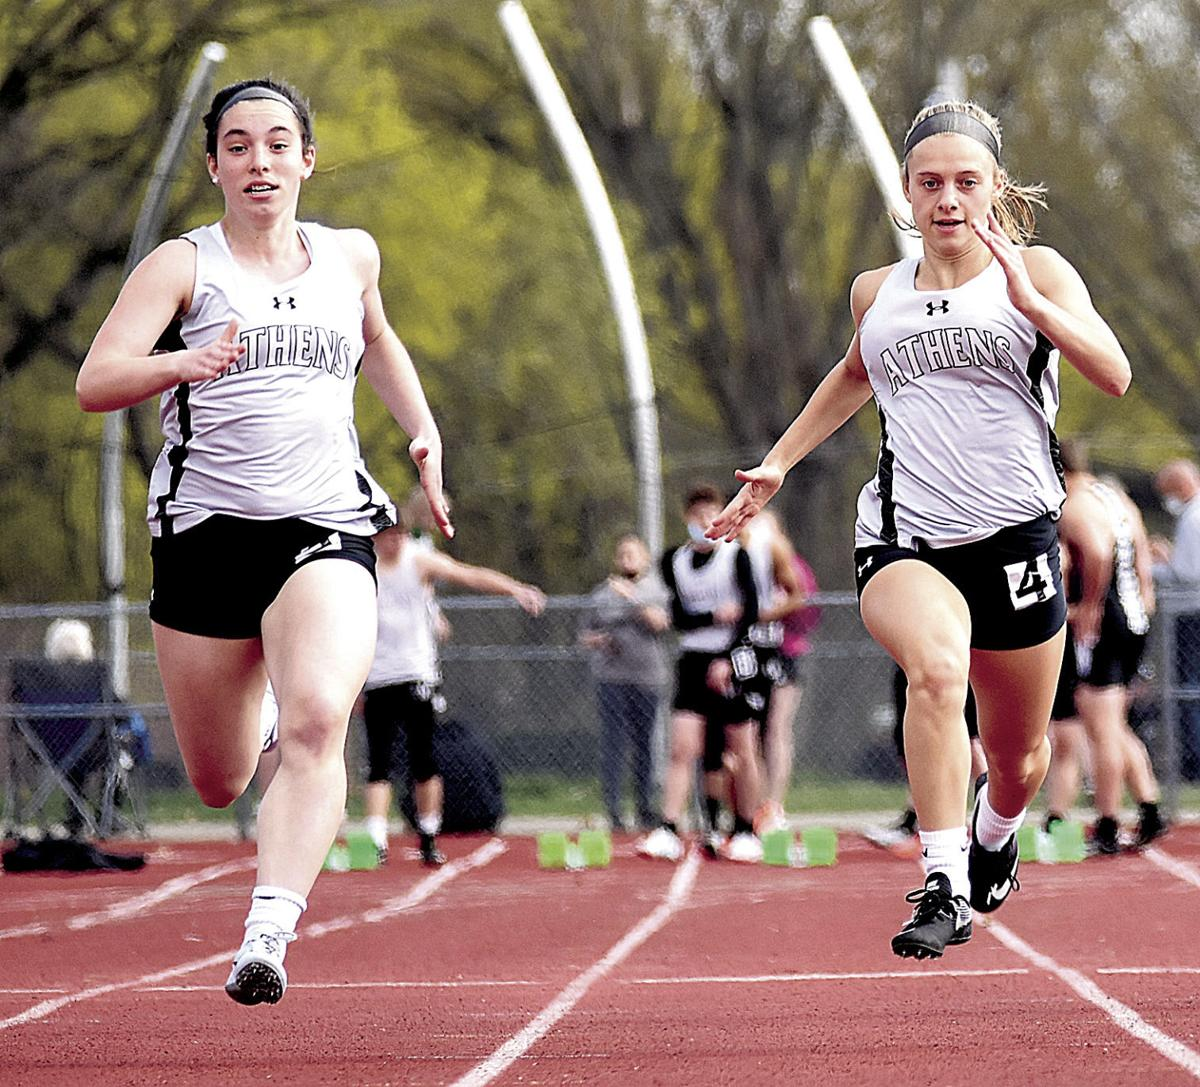 Athens' Roe named the Times top female track and field athlete